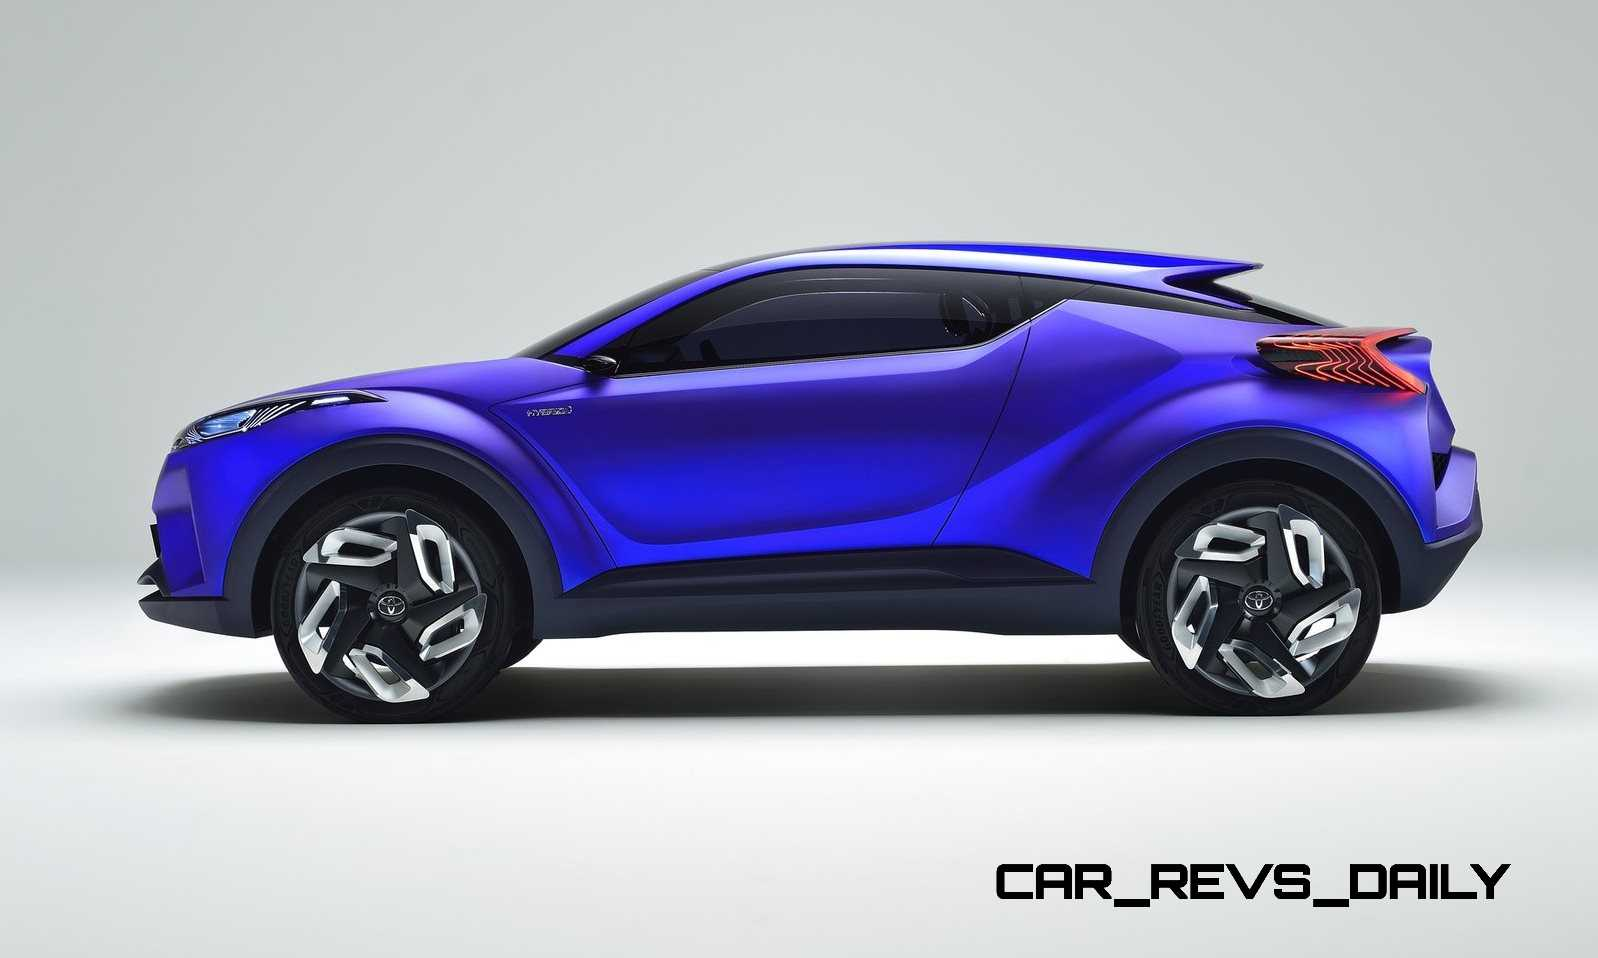 Update1 With 30 New Photos - 2014 Toyota C-HR Concept